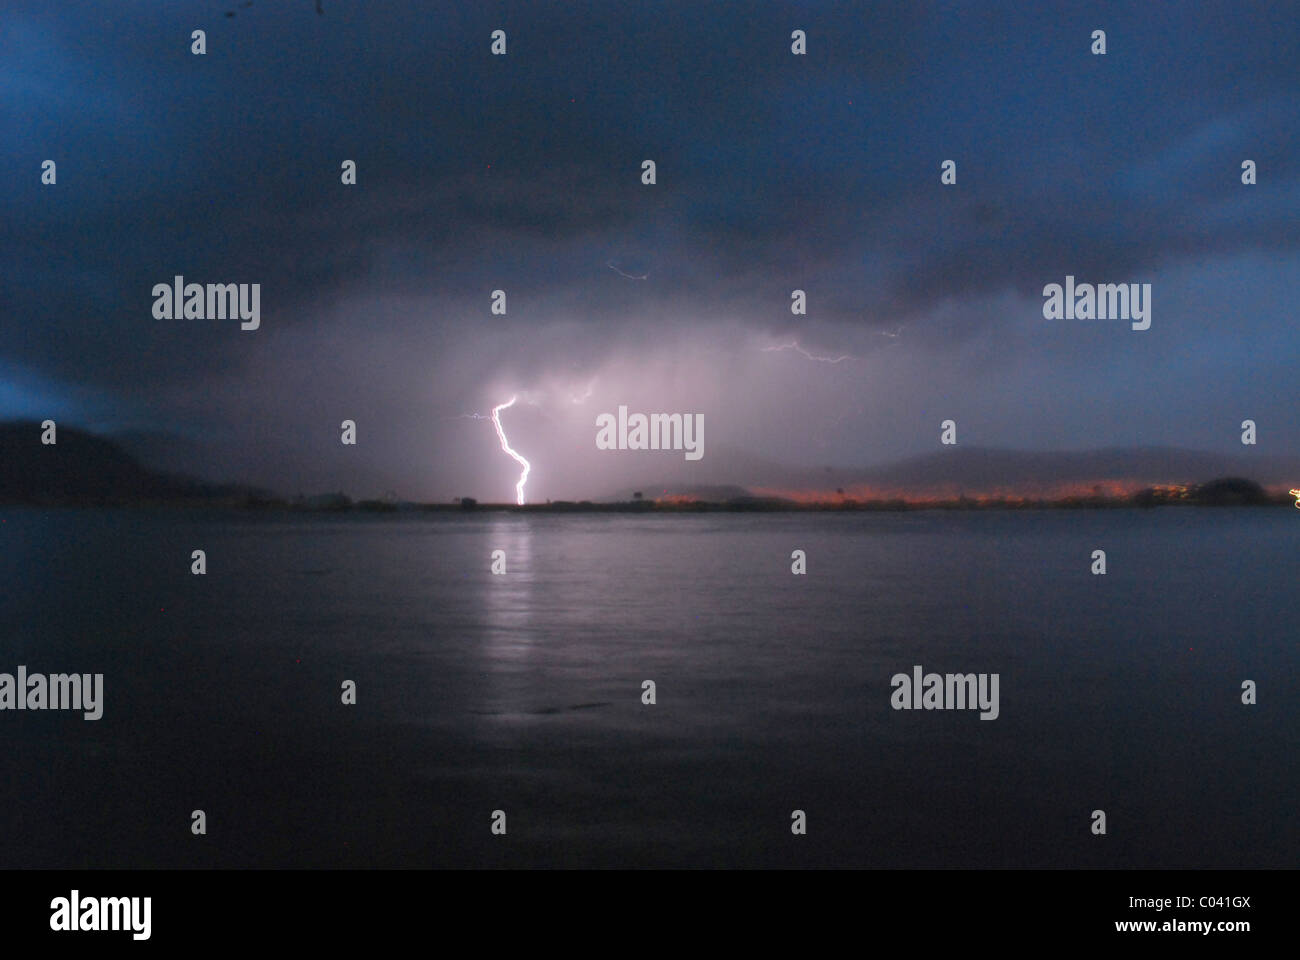 A lightning storm over Lake Titicaca, between Peru and Bolivia - Stock Image